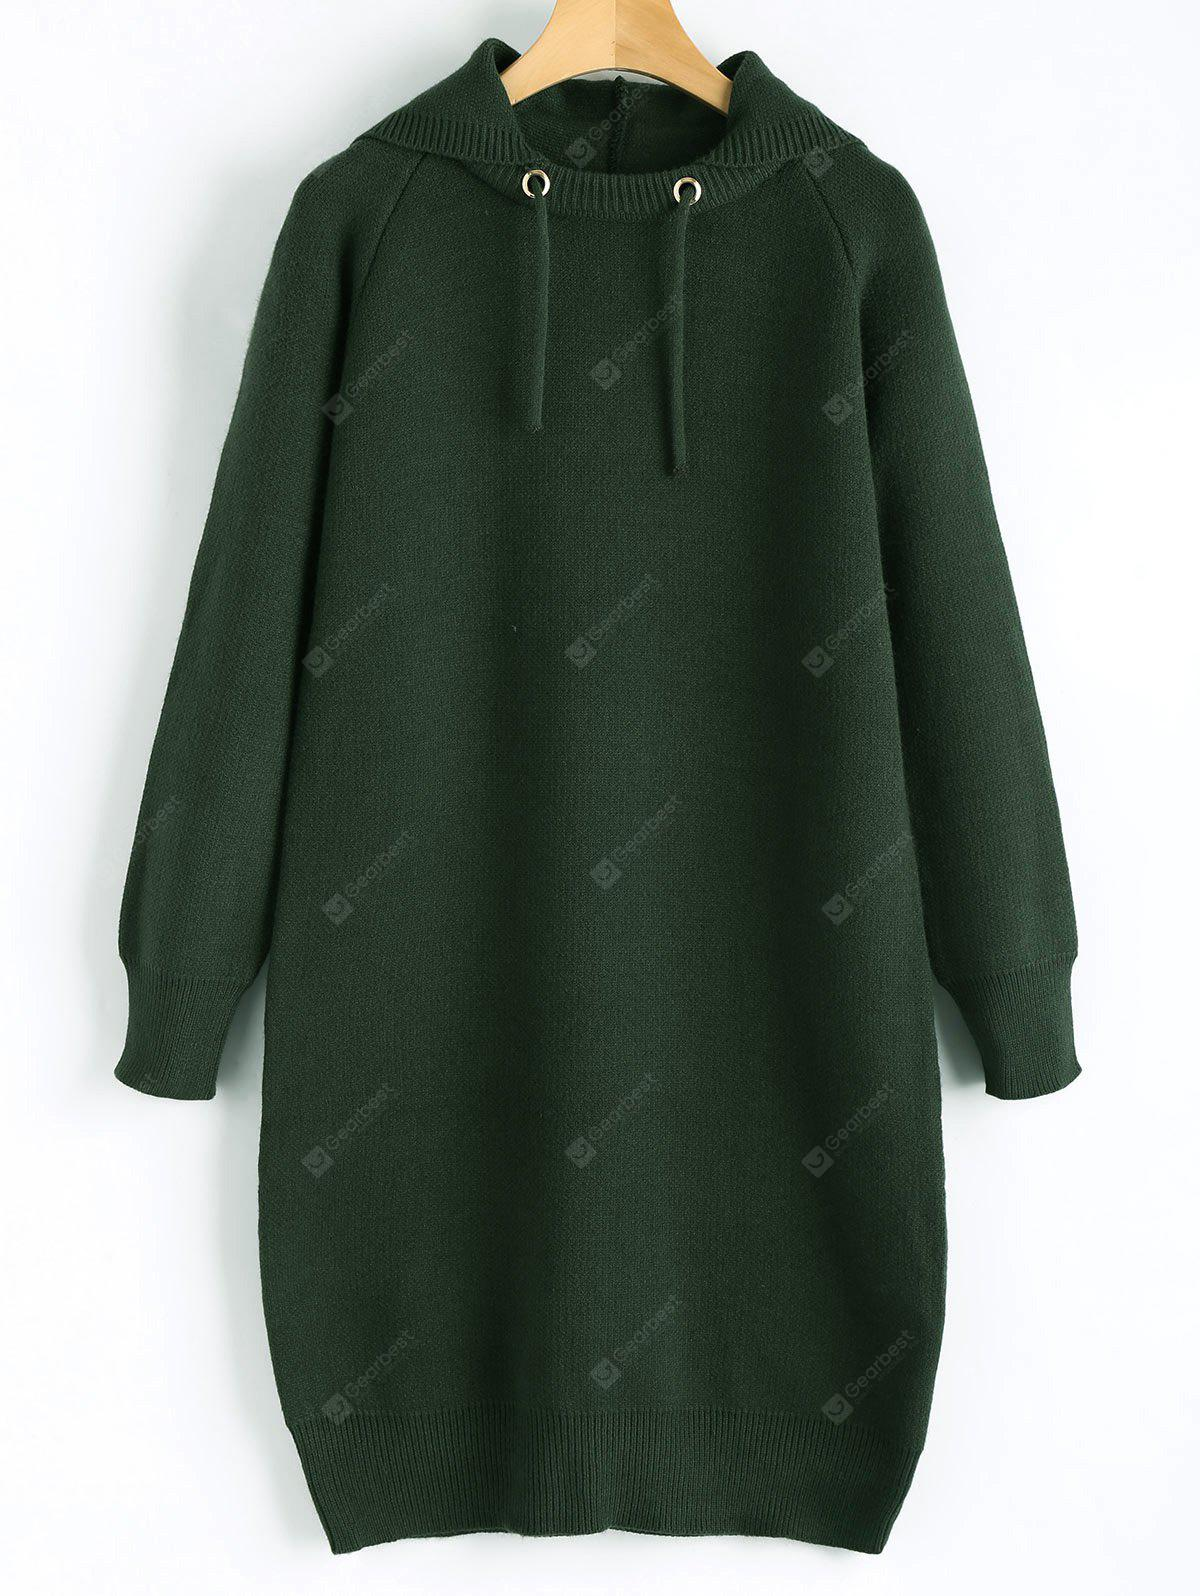 BLACKISH GREEN Hooded Knitted Dress